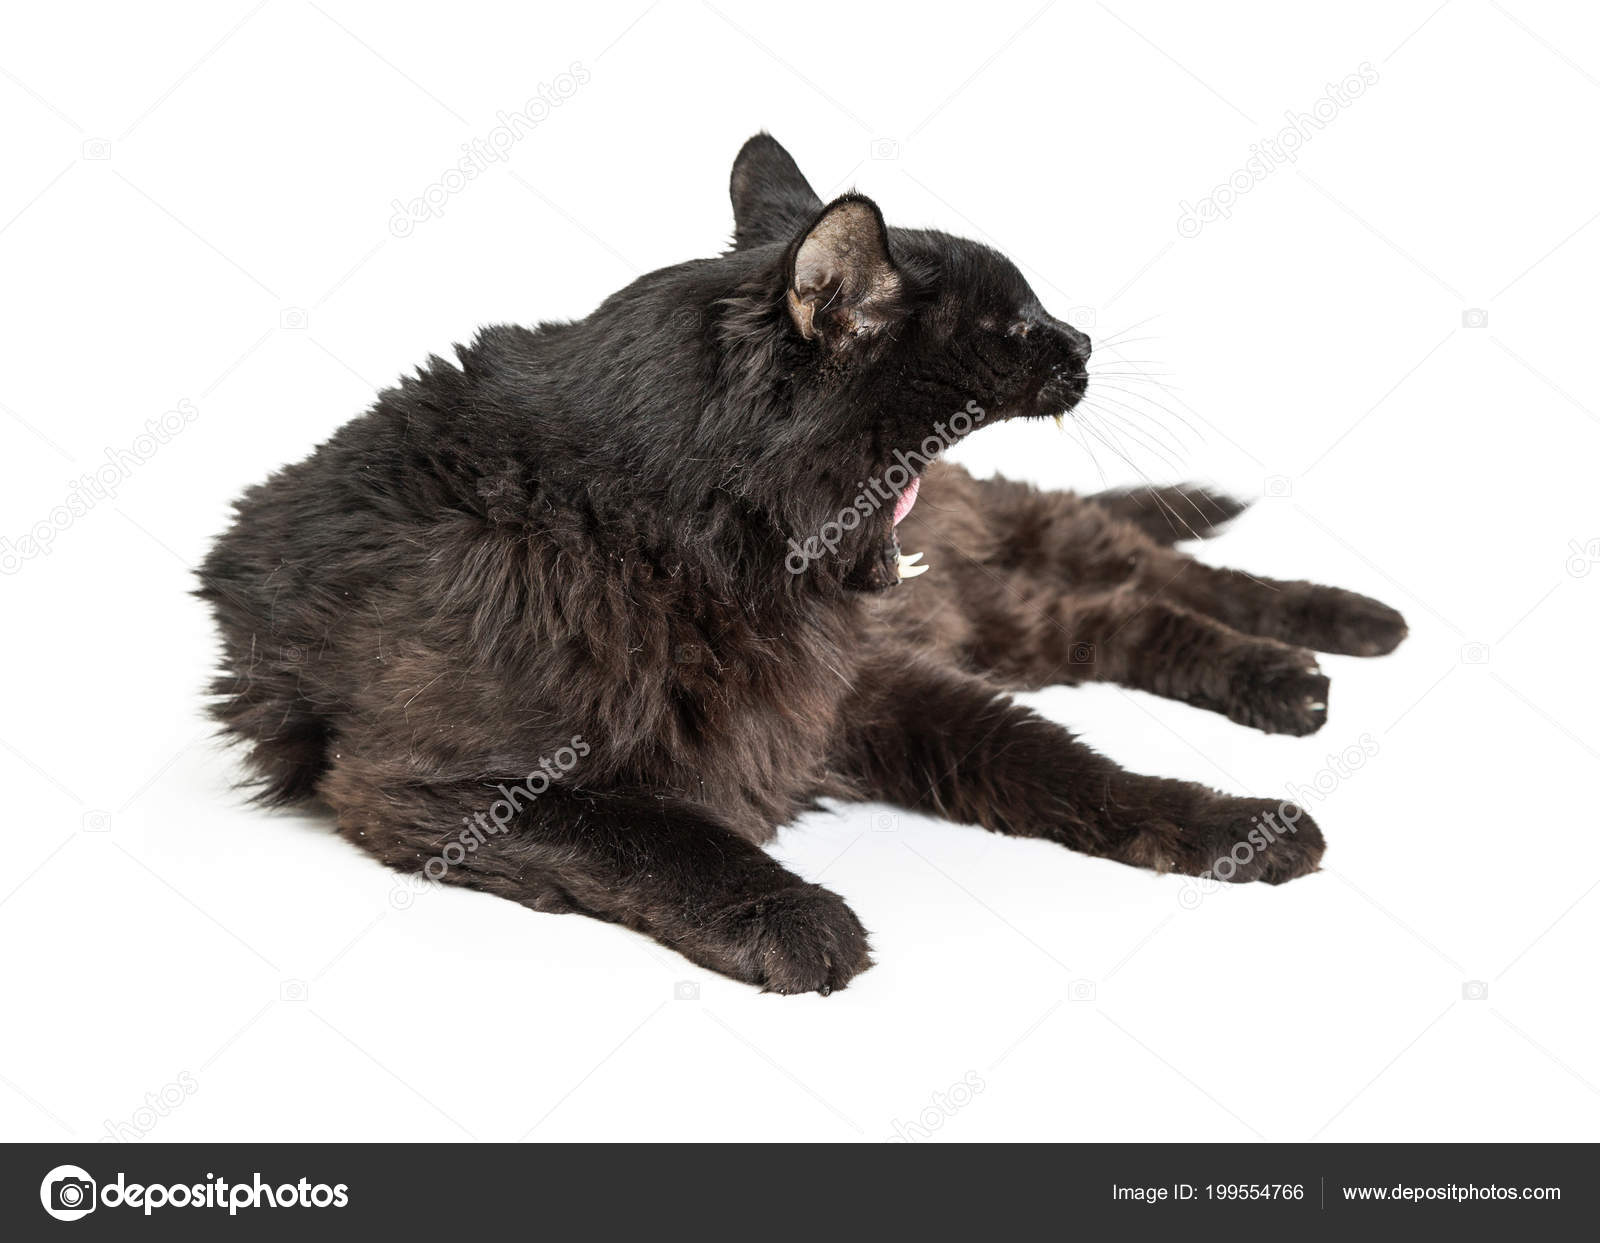 Black Cat Opened Wide Mouth Yawning Looking Side While Lying Stock